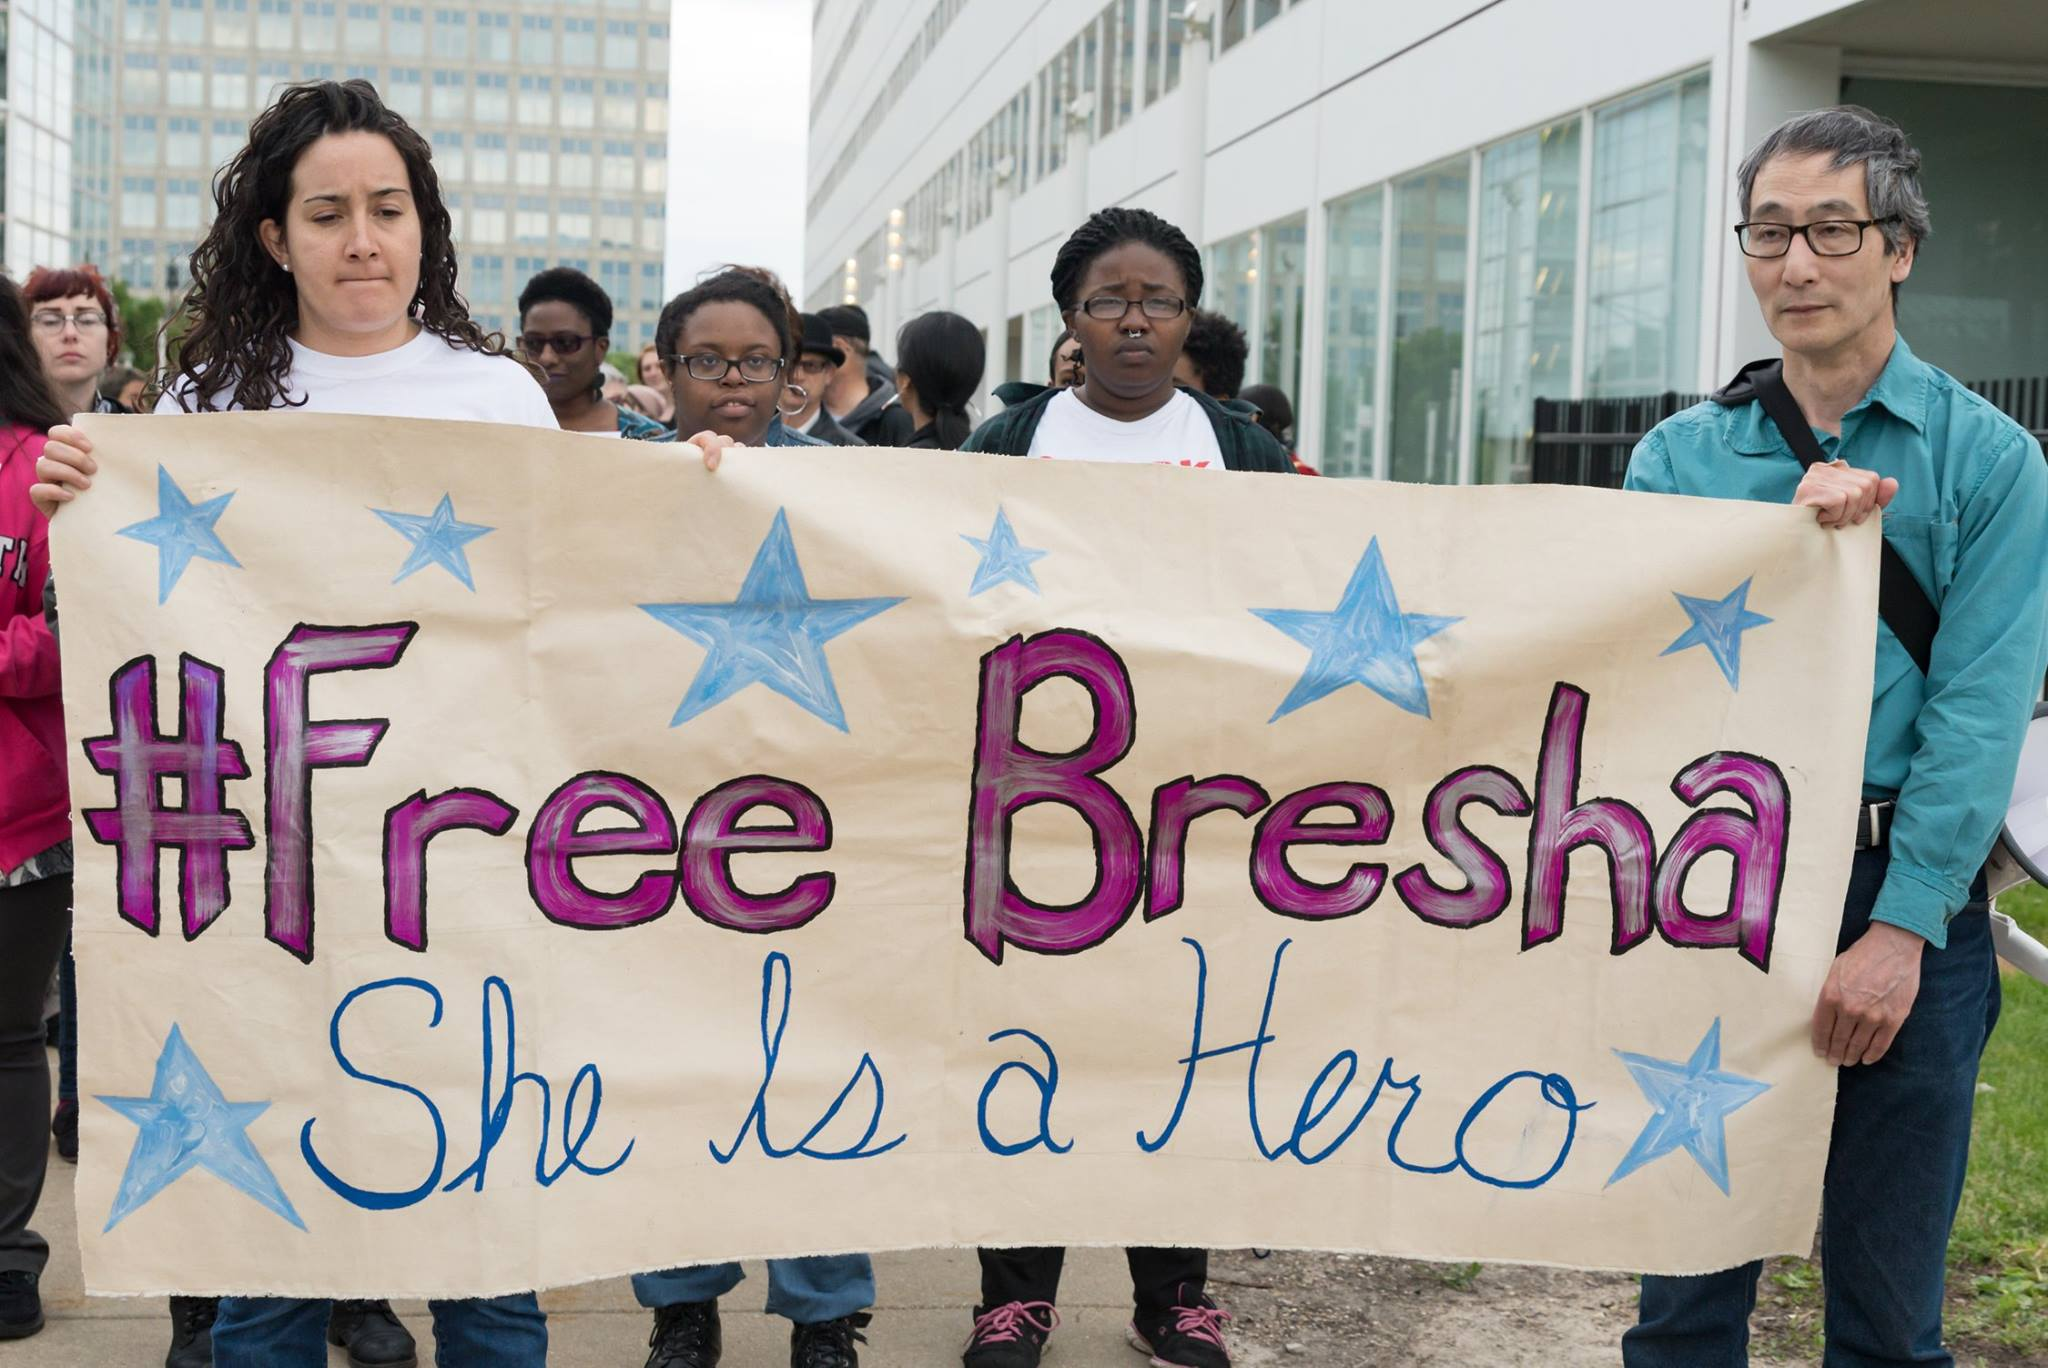 Protestors holding a sign reading #FreeBesha, She Is a Hero